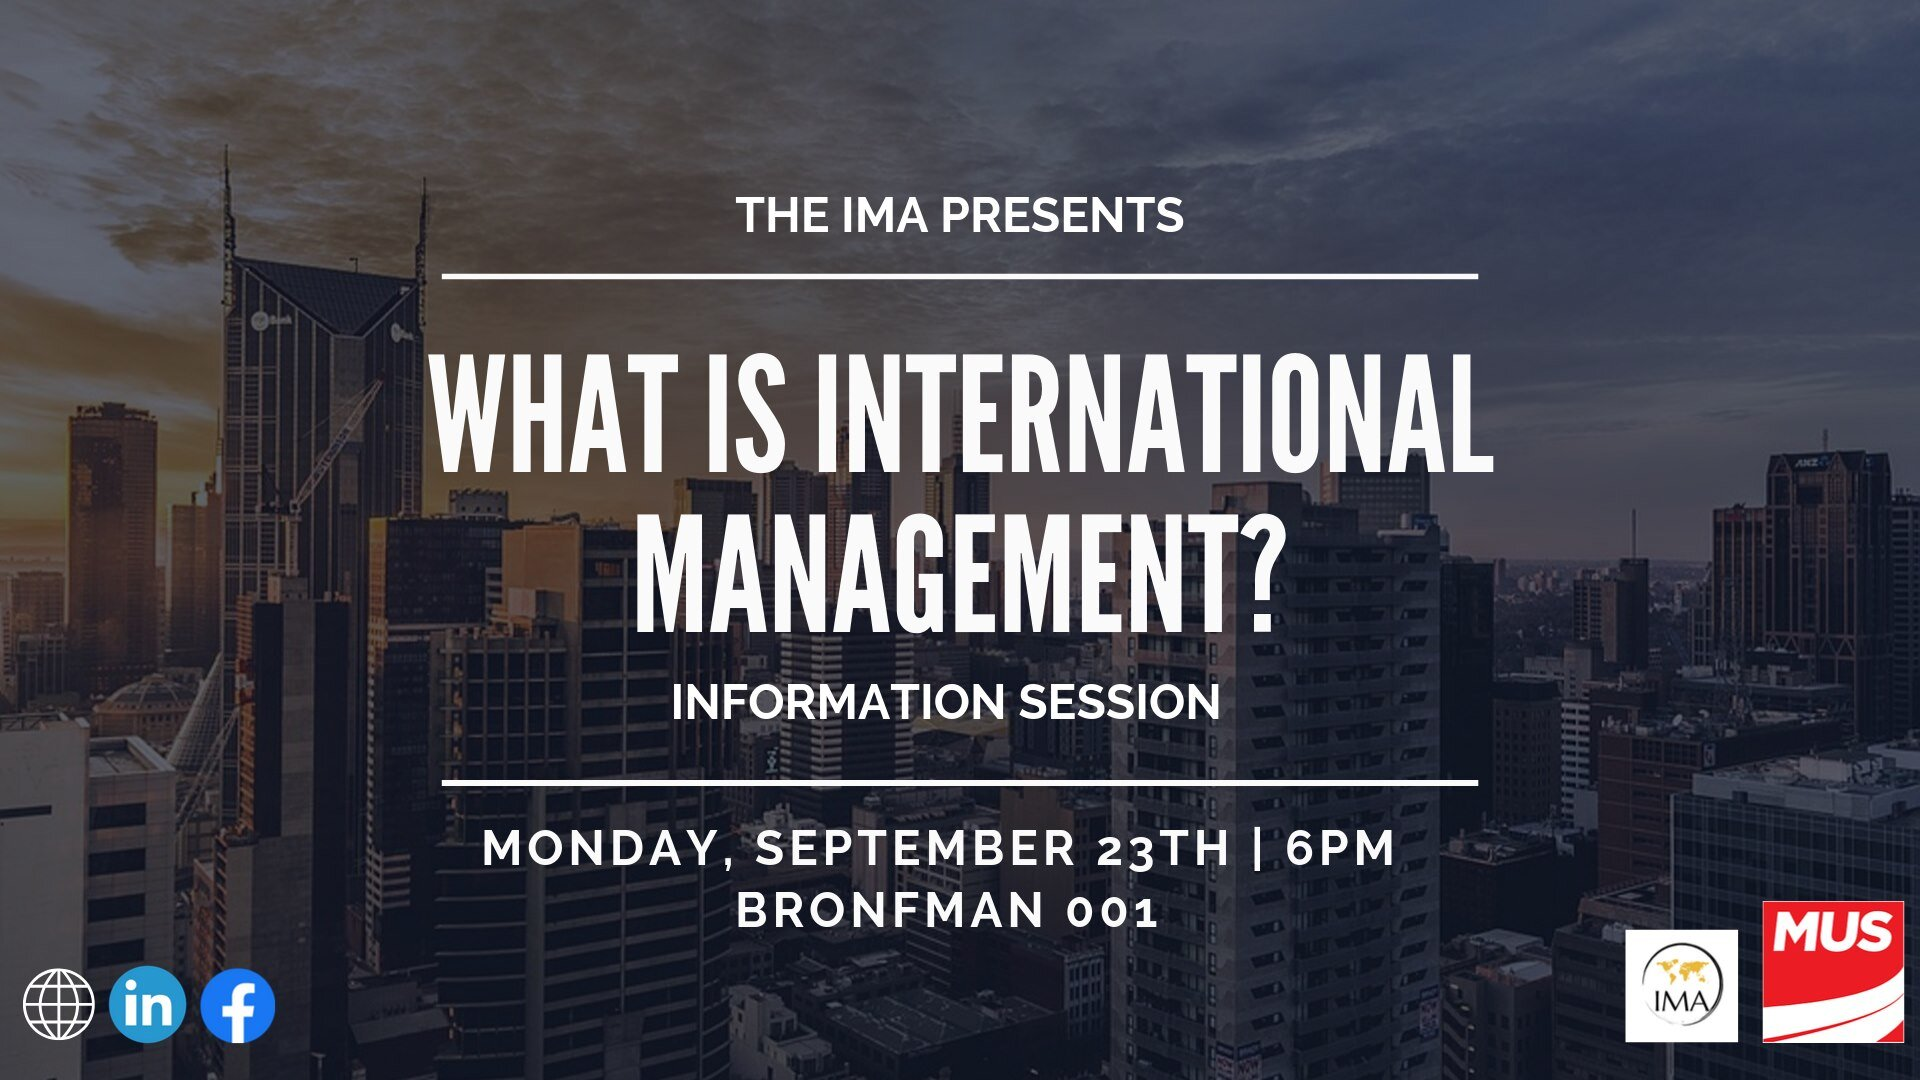 What is International Management? (Information Session) - ☑ Are you passionate about travel?☑ Do you love immersing yourself into new cultures?☑ Would you like to learn a new language?☑ Have you considered going on exchange or studying abroad?☑ Are you interested in pursuing your career internationally?If you answered yes to any of these questions, the International Management program may be the perfect fit for you!On September 23rd at 6pm, the International Management Association (IMA) will be hosting an information session about the major in International Management for all those interested in learning about this unique program. As a basic summary, the International Management major integrates diverse aspects of business, global studies, language courses, and international experiences to guide you towards your future career. Such a customizable program may seem slightly daunting, so we are here to walk you through it!Academic advisers will speak about the program's components and career opportunities, while alumni and current students will give their testimonies about their experience in the major. You will also have the opportunity to ask any questions to our knowledgeable speakers to gain a better understanding of the major. By attending this event, you will be fully equipped with the knowledge you need to make the right decisions for your future!